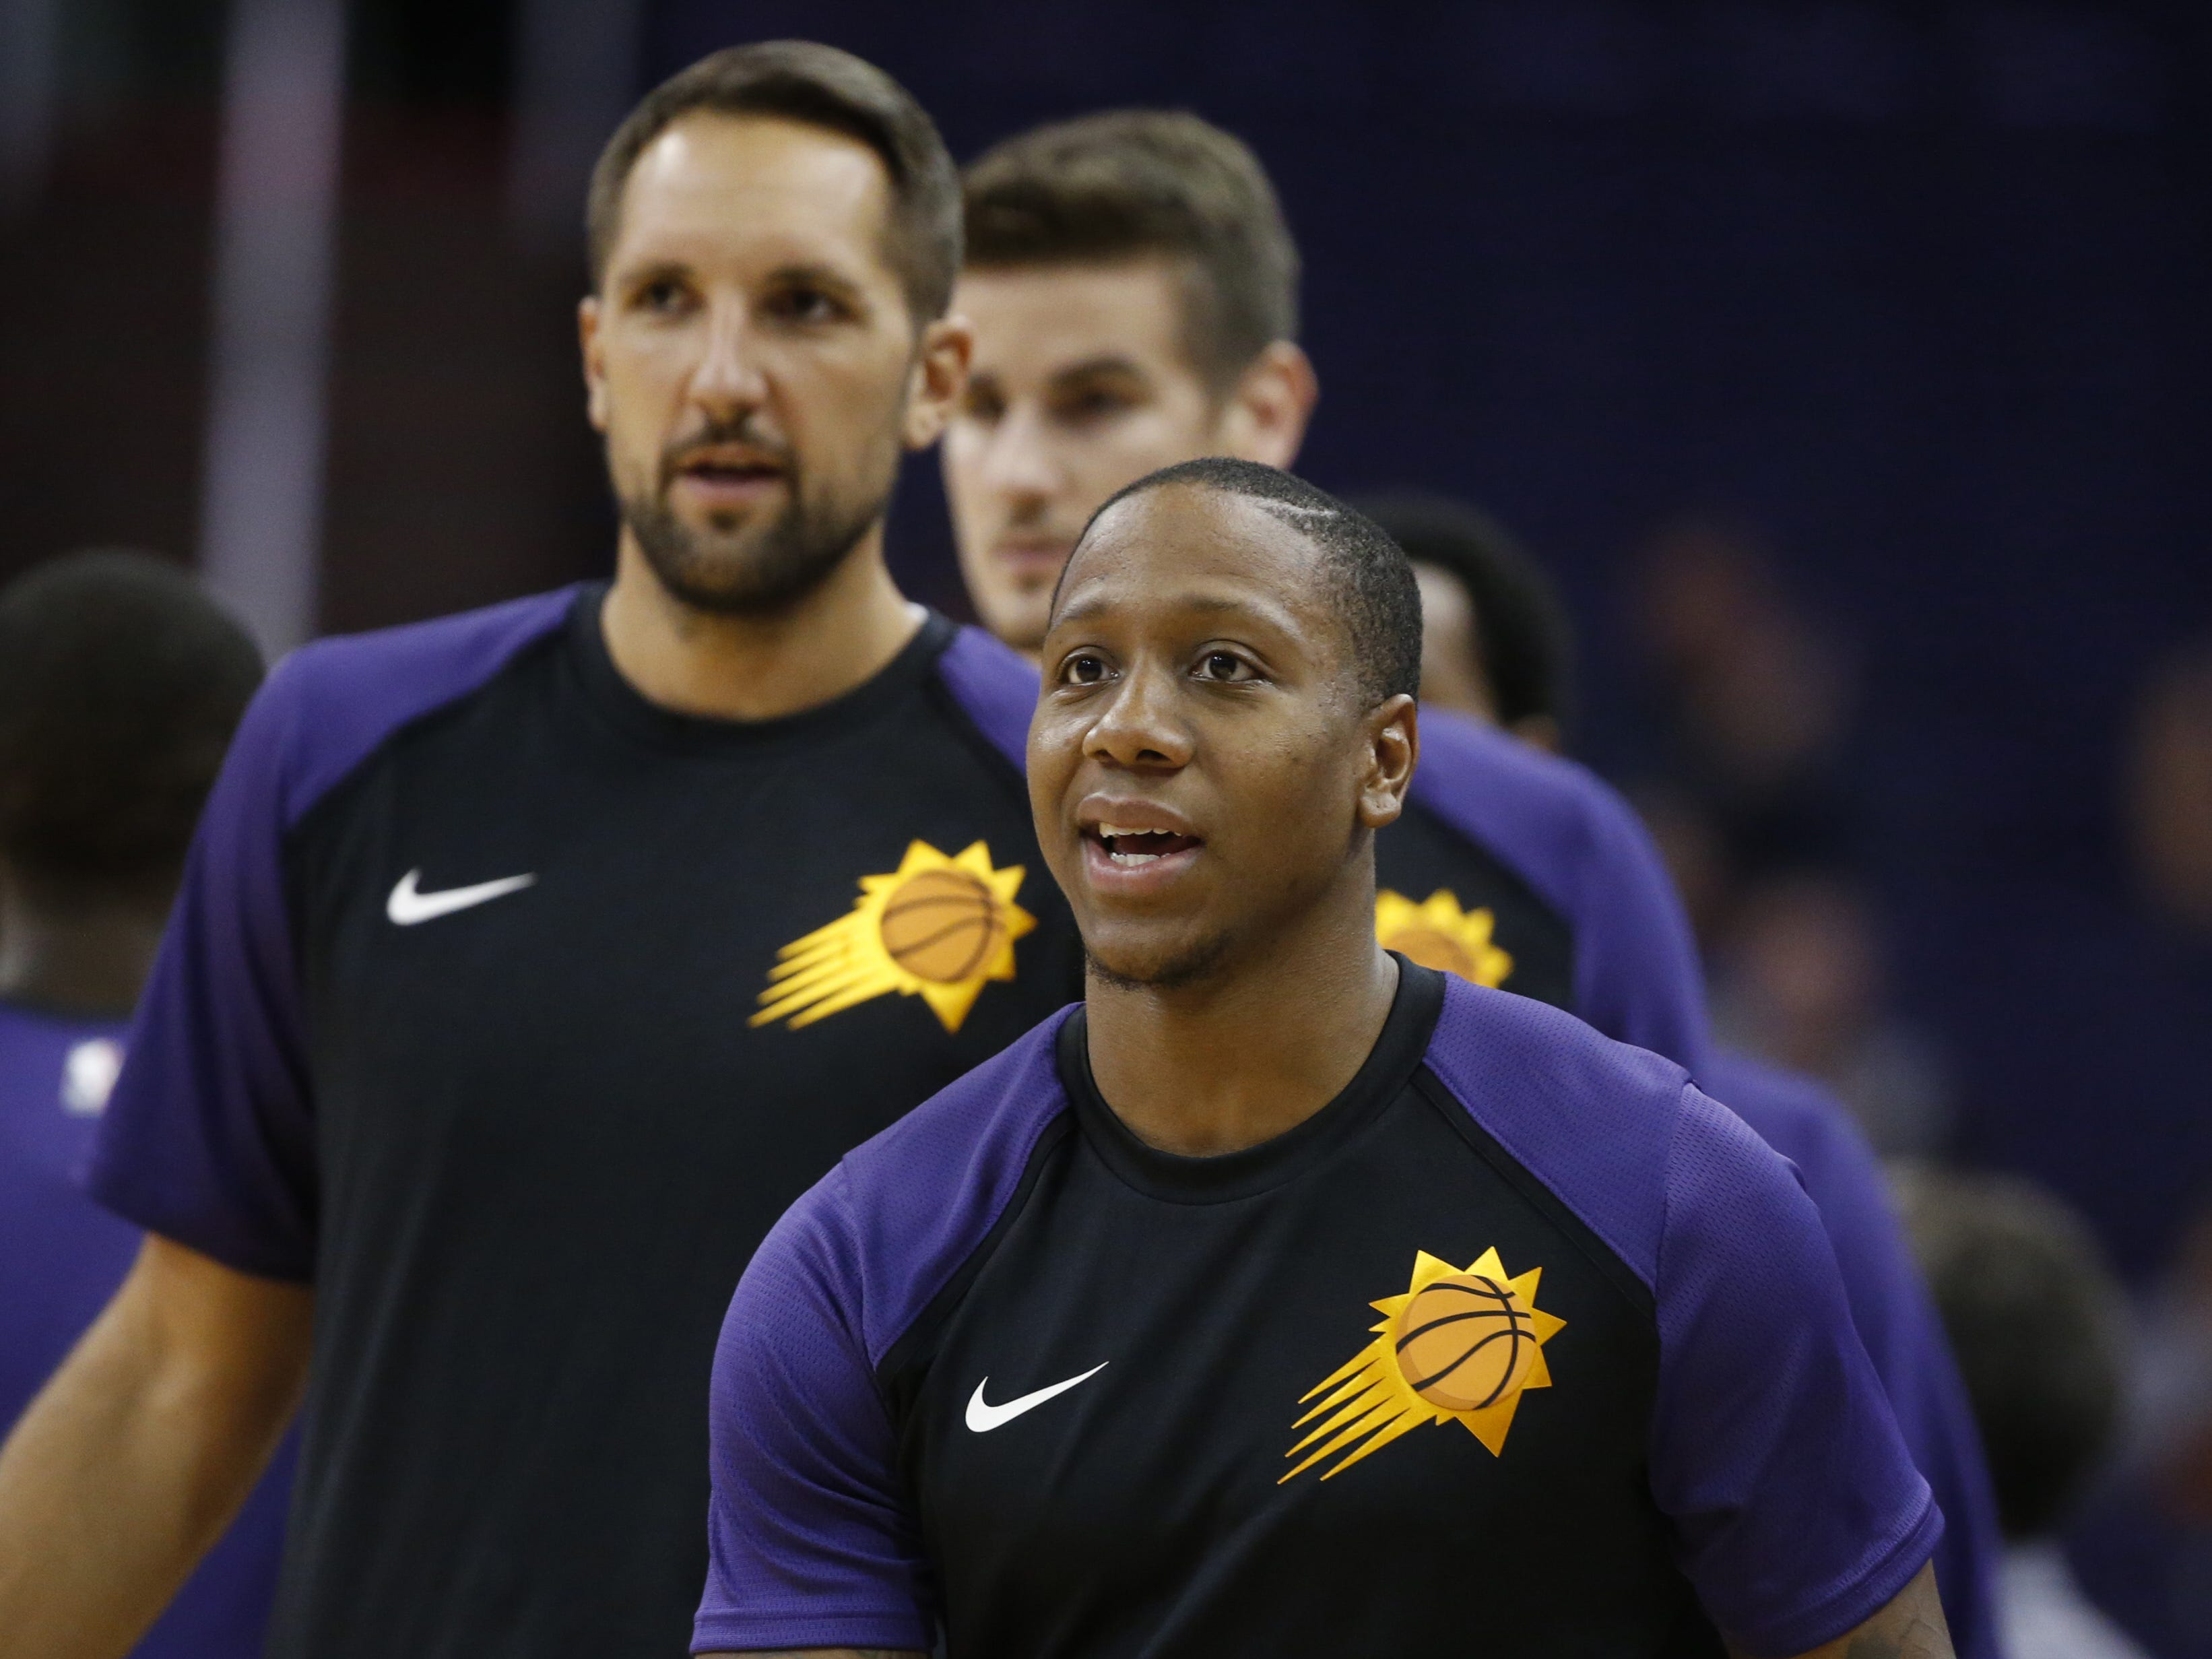 Suns Isaiah Canaan warms up before a game against the Kings at Talking Stick Resort Arena in Phoenix, Ariz. on October 1, 2018.